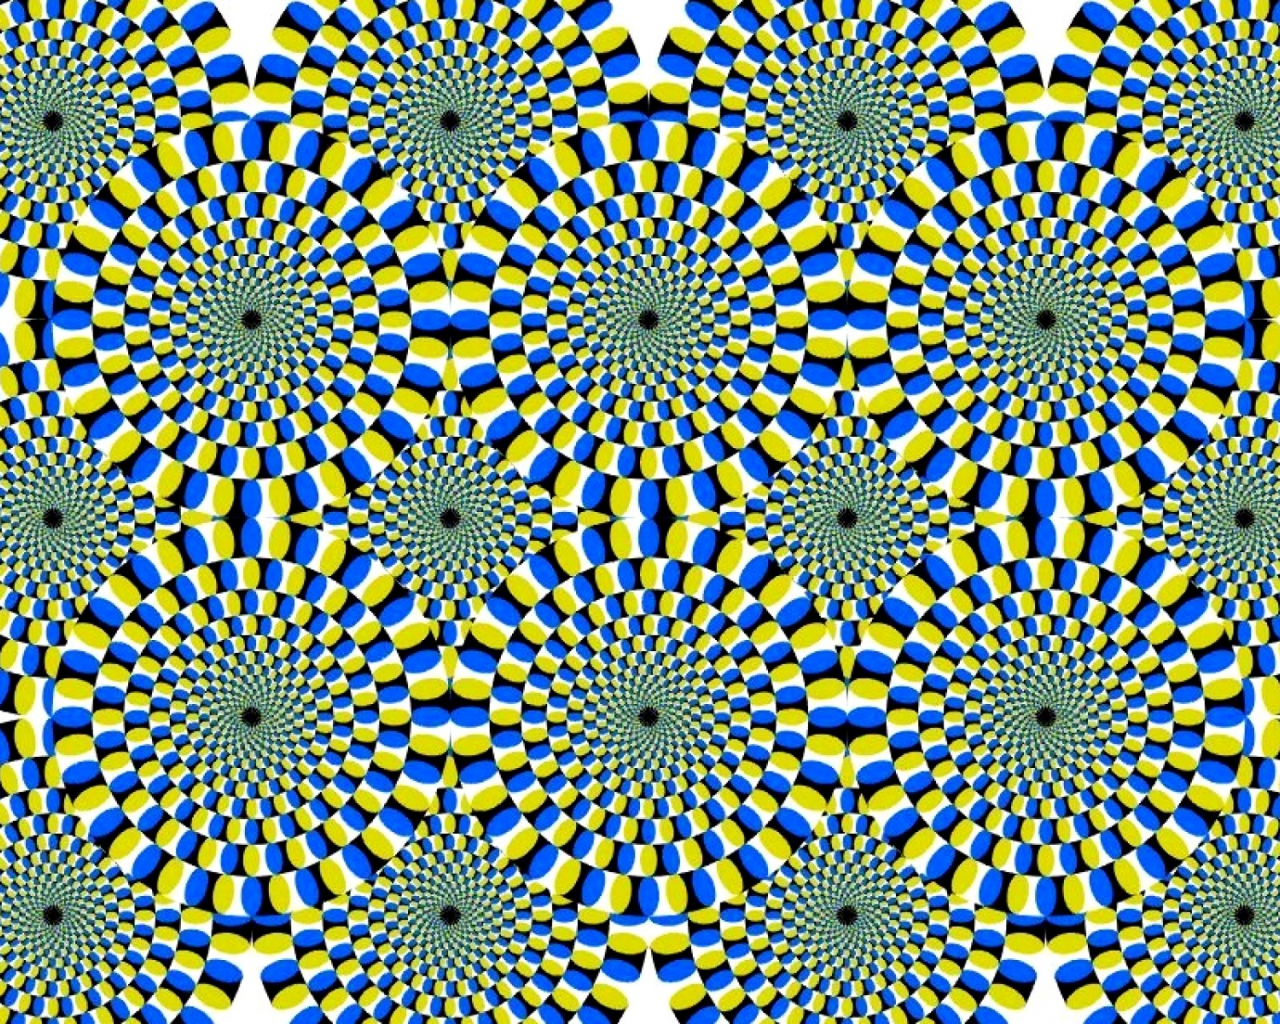 Free Download Moving Circles Cool Optical Illusion Widescreen And Full Hd 1920x1200 For Your Desktop Mobile Tablet Explore 48 Moving Optical Illusion Wallpaper Optical Illusions Wallpaper Optical Illusion Iphone Wallpapers,Top 10 Wallpaper Companies In India